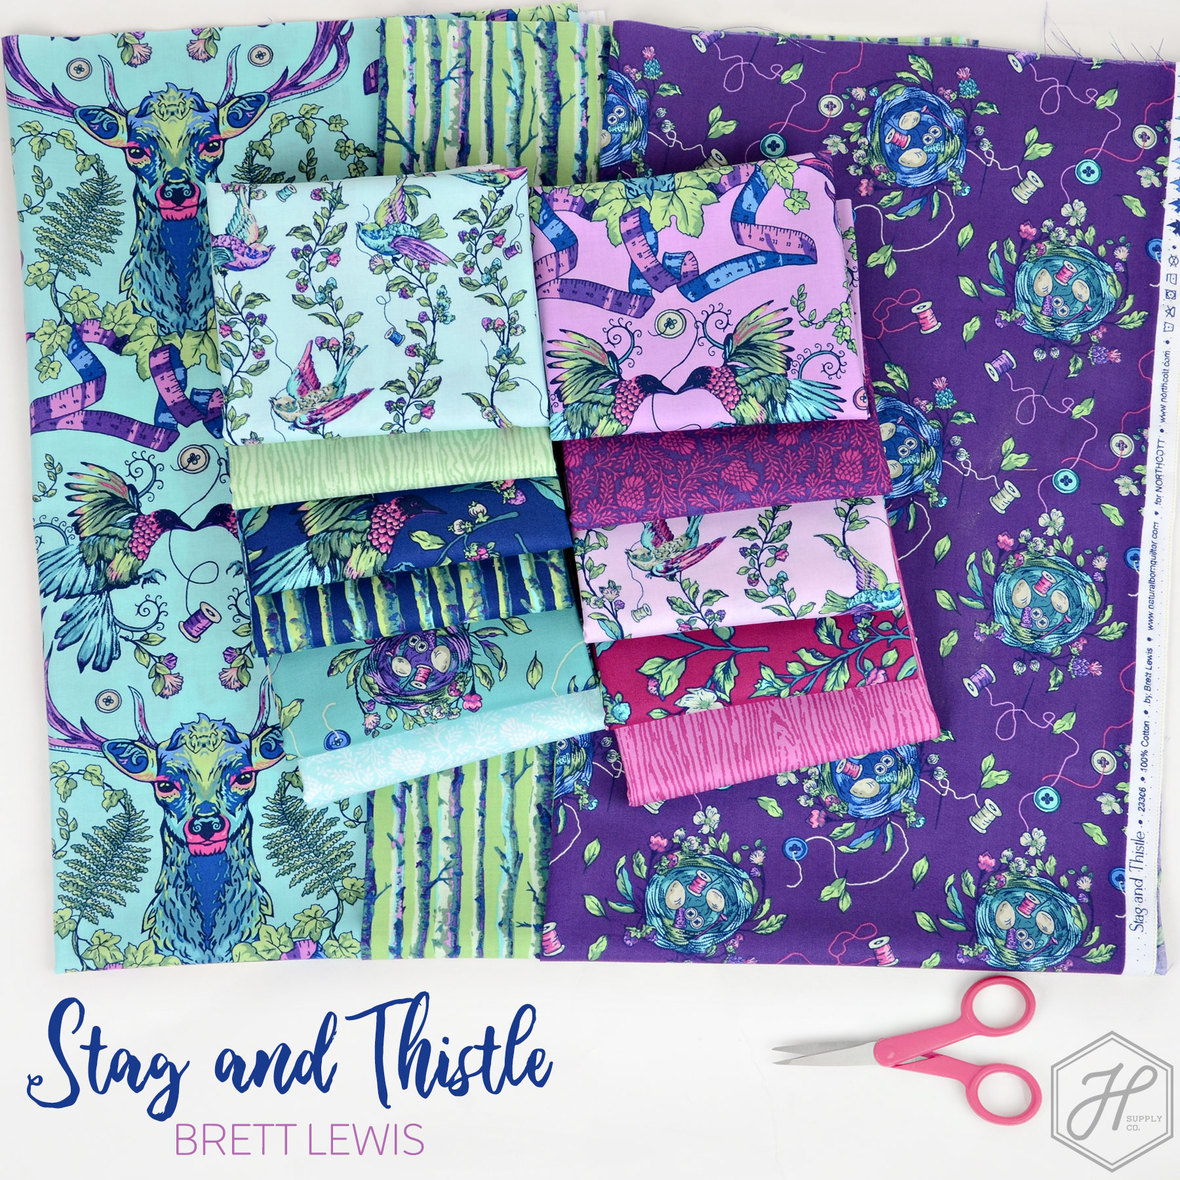 Stag-and-Thistle-Fabric-Brett-Lewis-Natural-Born-Quilter-at-Hawthorne-Supply-Co